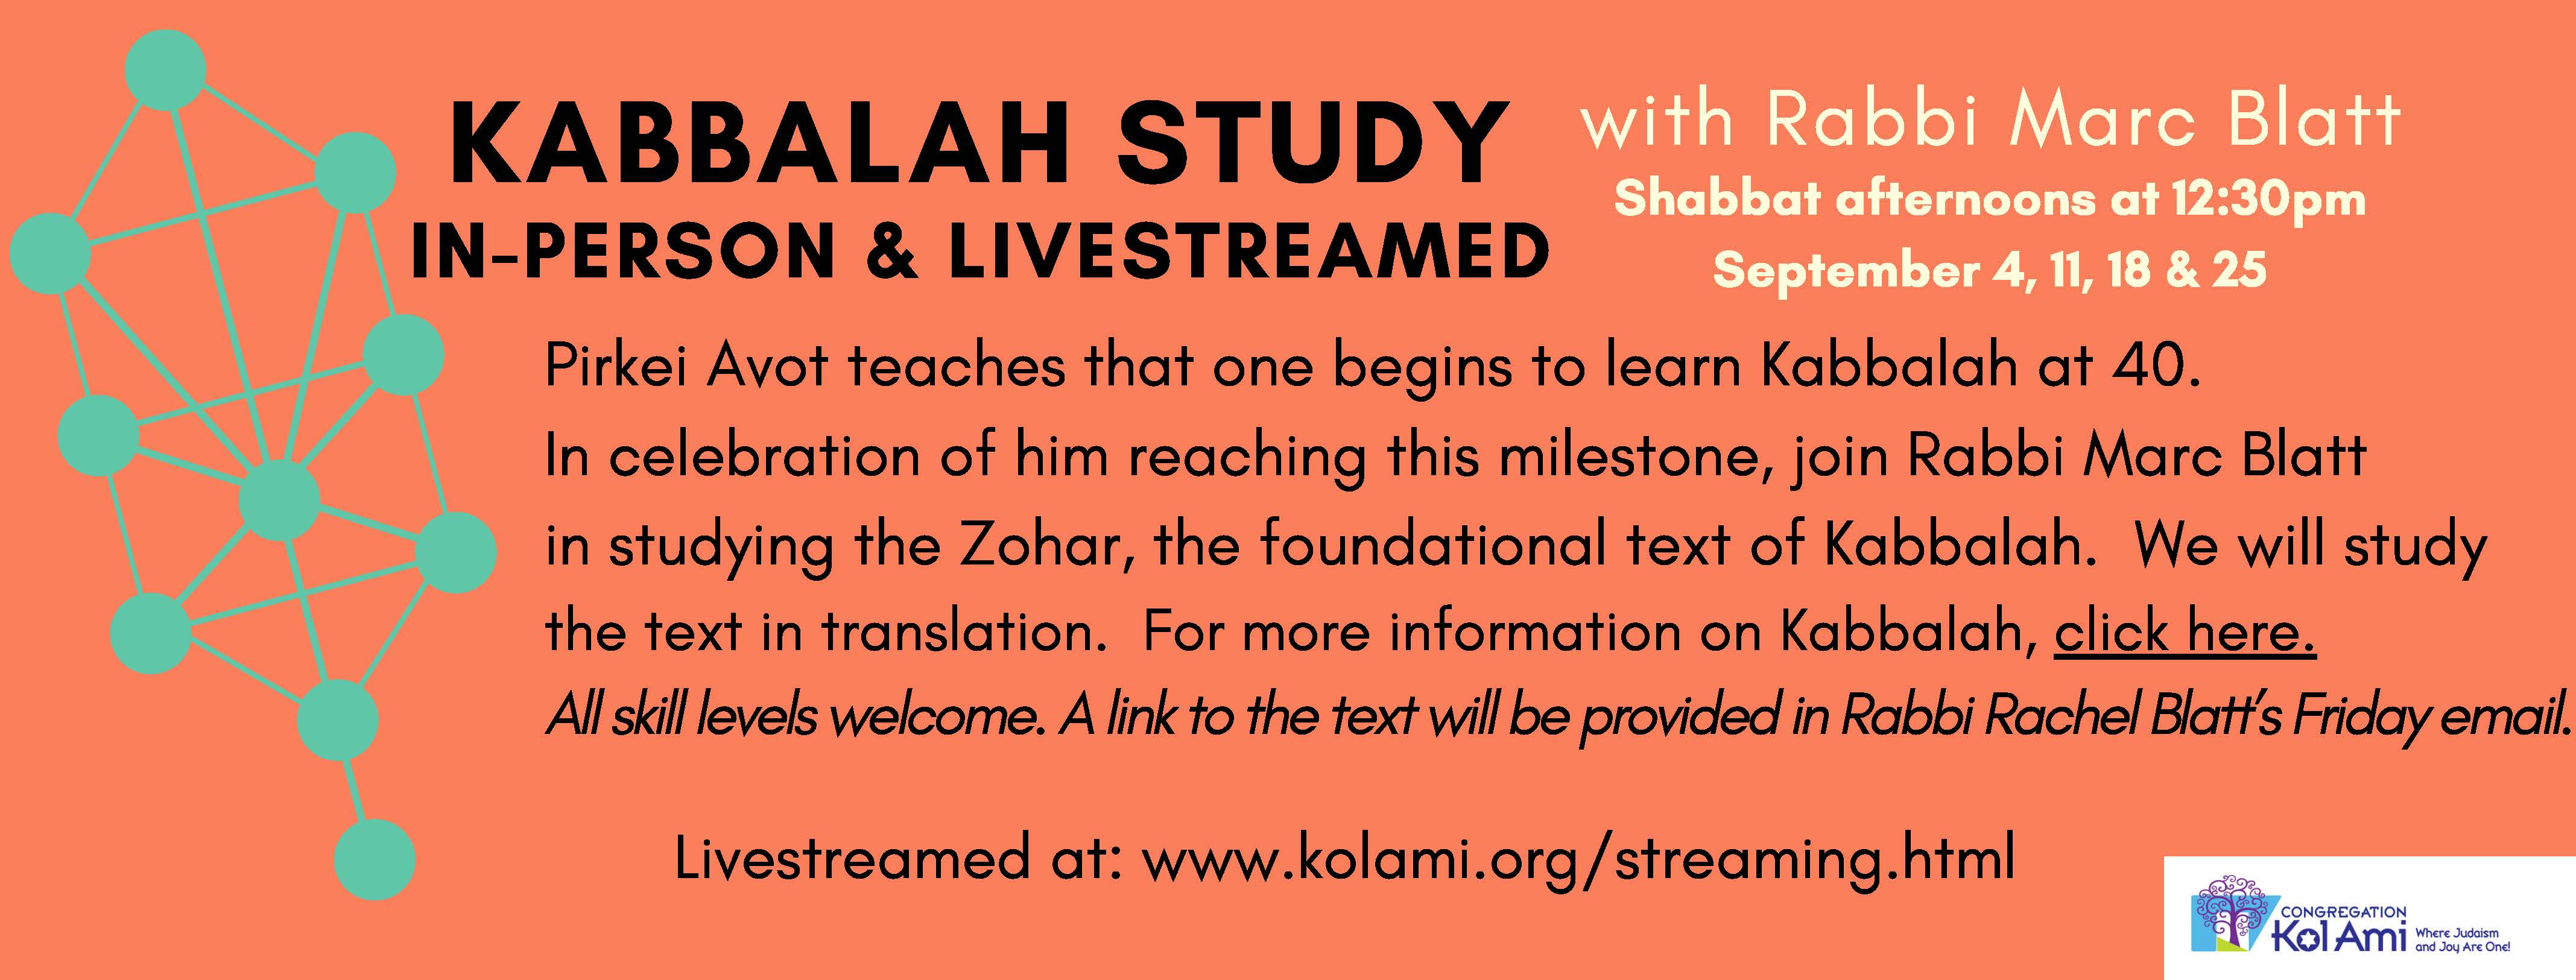 Banner Image for In-Person & Livestream Kabbalah Study After Services with Rabbi Marc Blatt